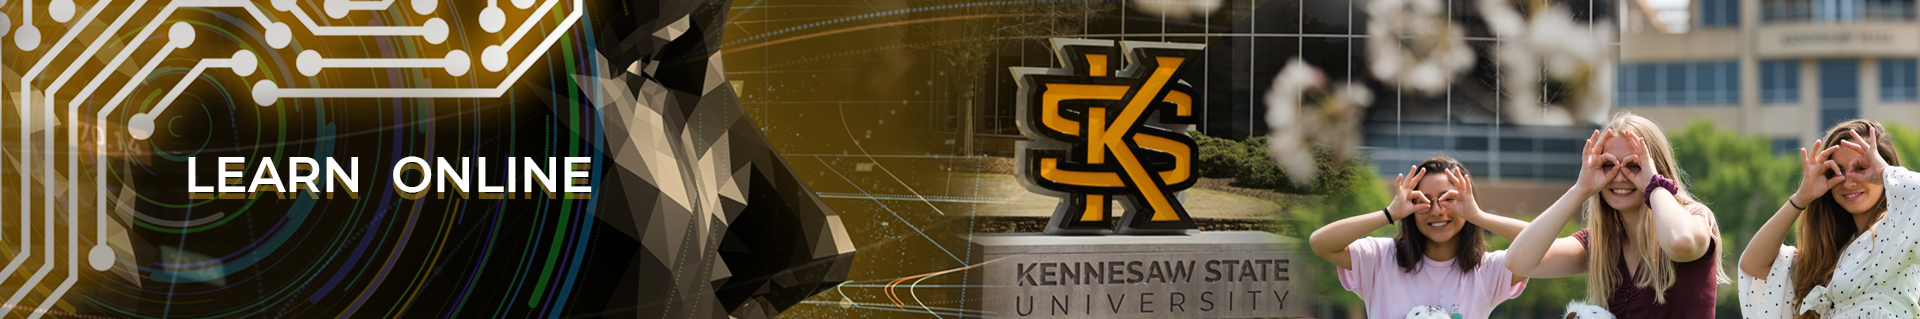 learn online at KSU